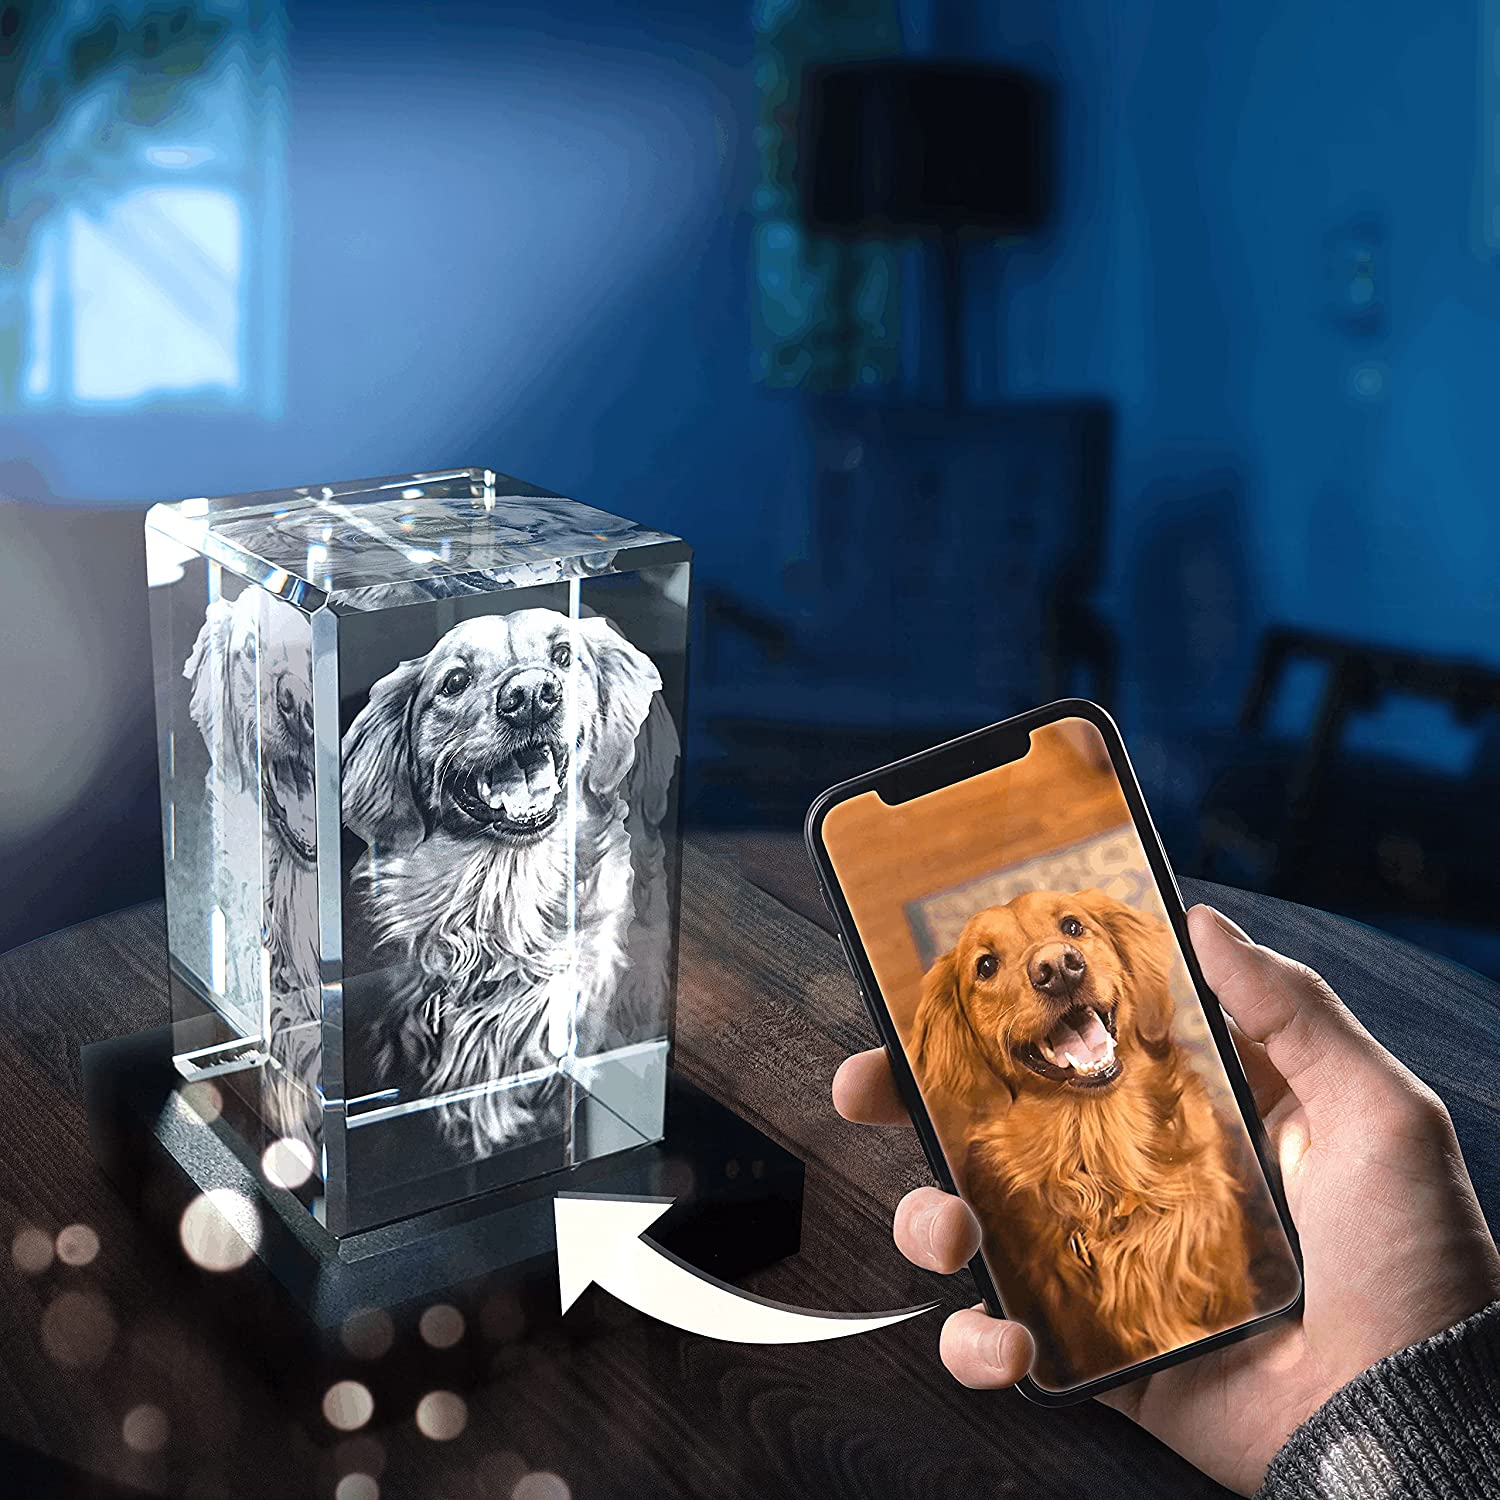 Pix Crystal - Free Shipping Don't miss the campaign Cheap Bargain Gift 3D Photo LED Base Personalized with